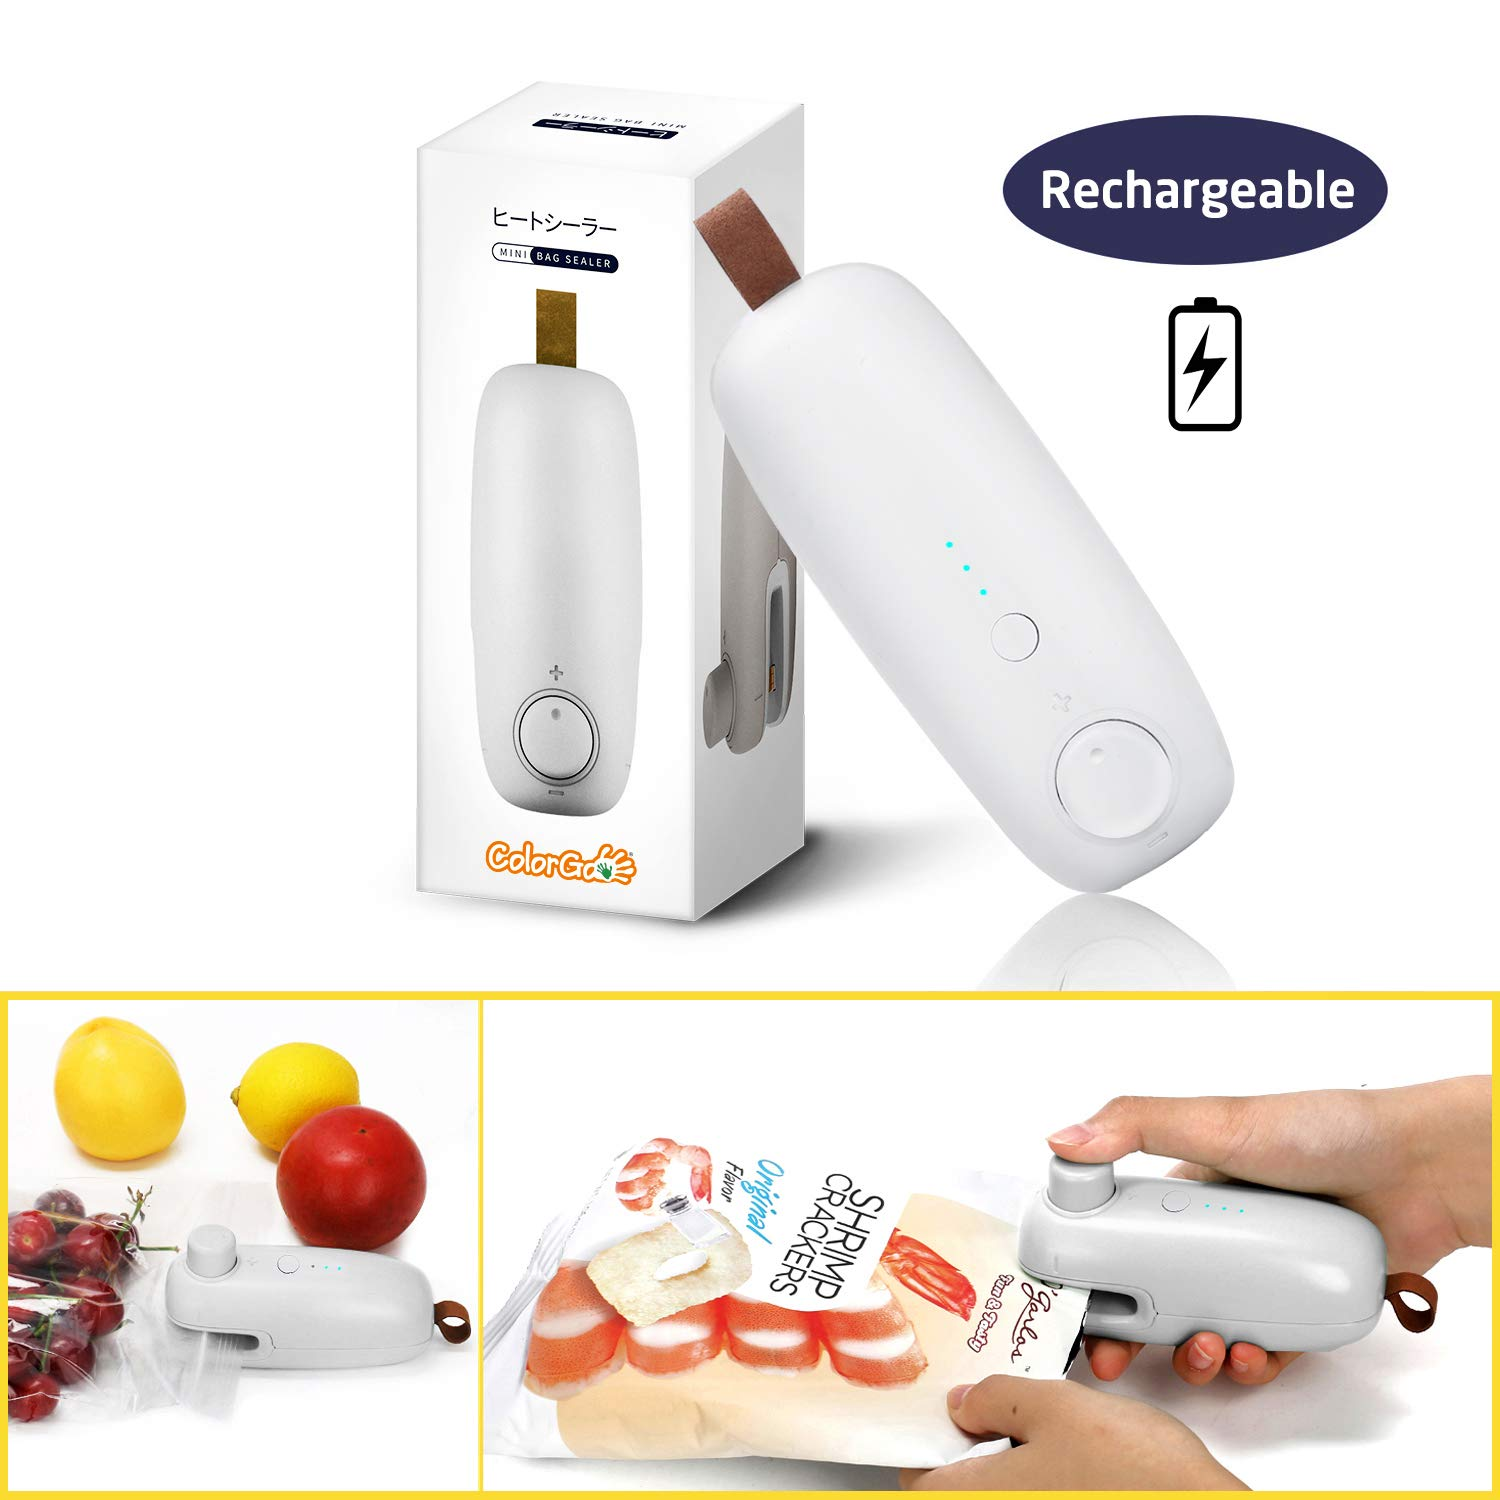 ColorGo Rechargeable Potato Chip Bag Sealer, USB Hand Held Mini Plastic Bag Heat Resealer for Food Storage [Patent Protect] by ColorGo